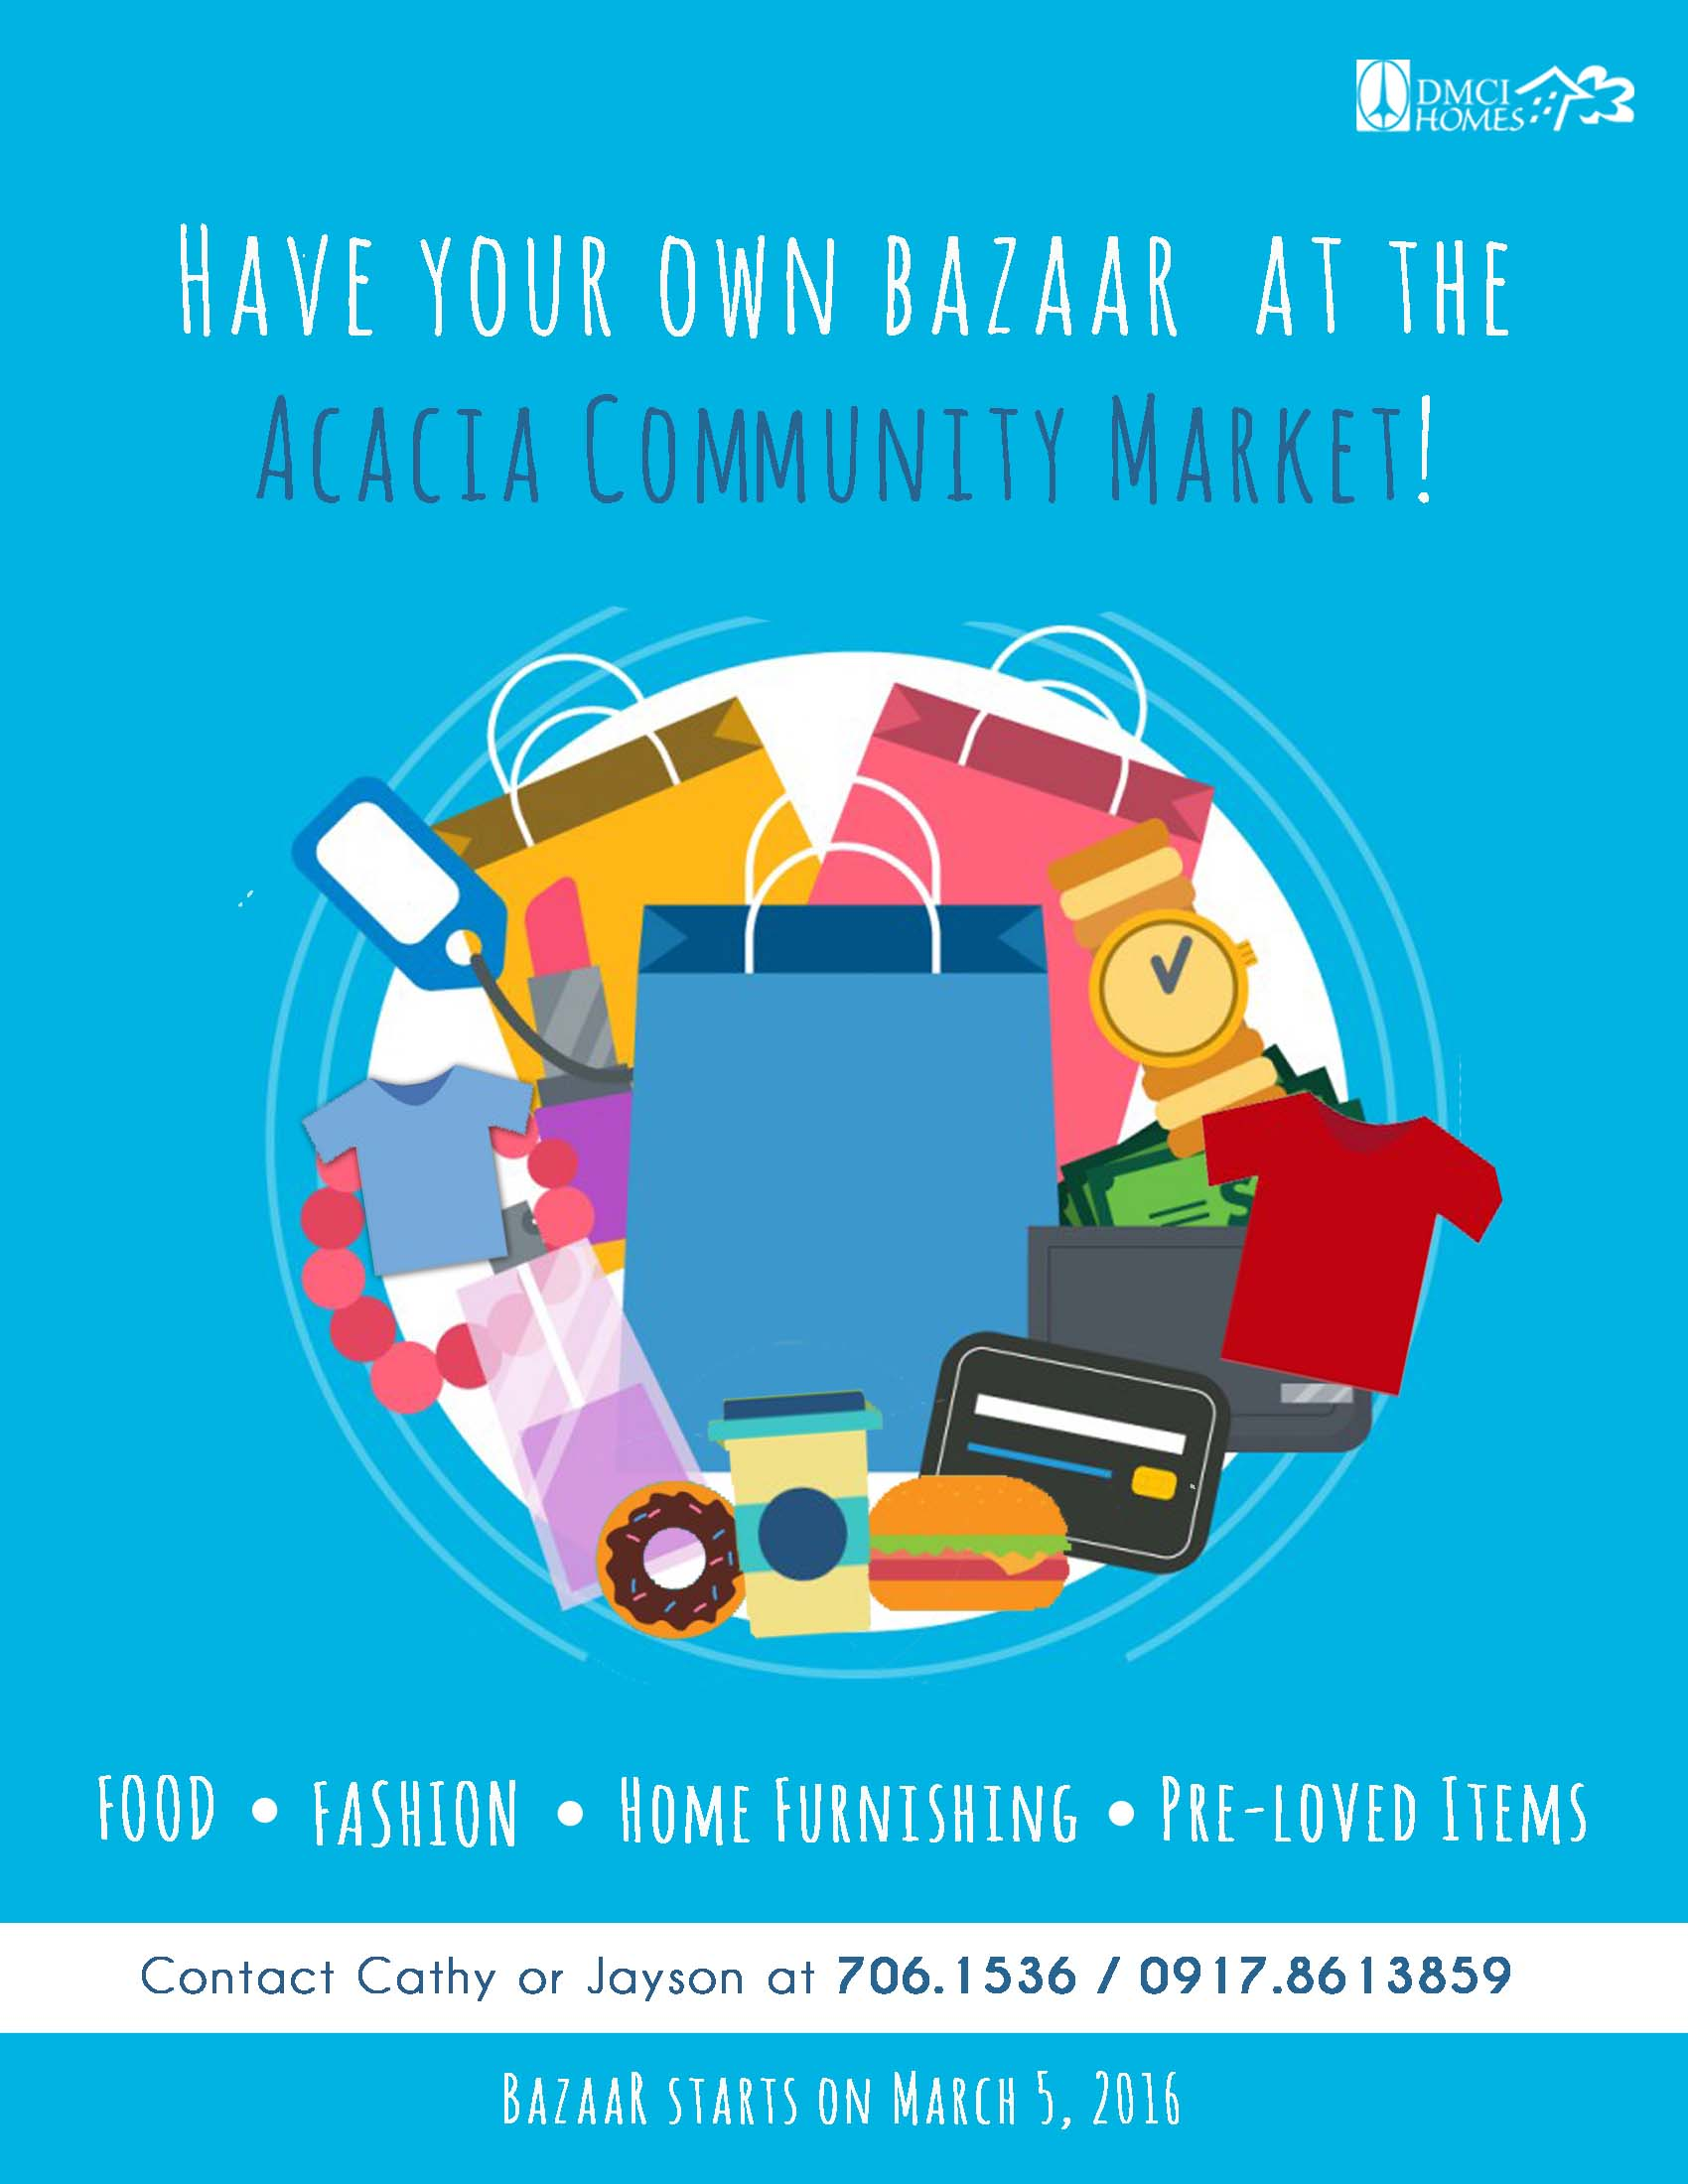 JOIN: Acacia Community Market is open to all start-up entrepreneurs